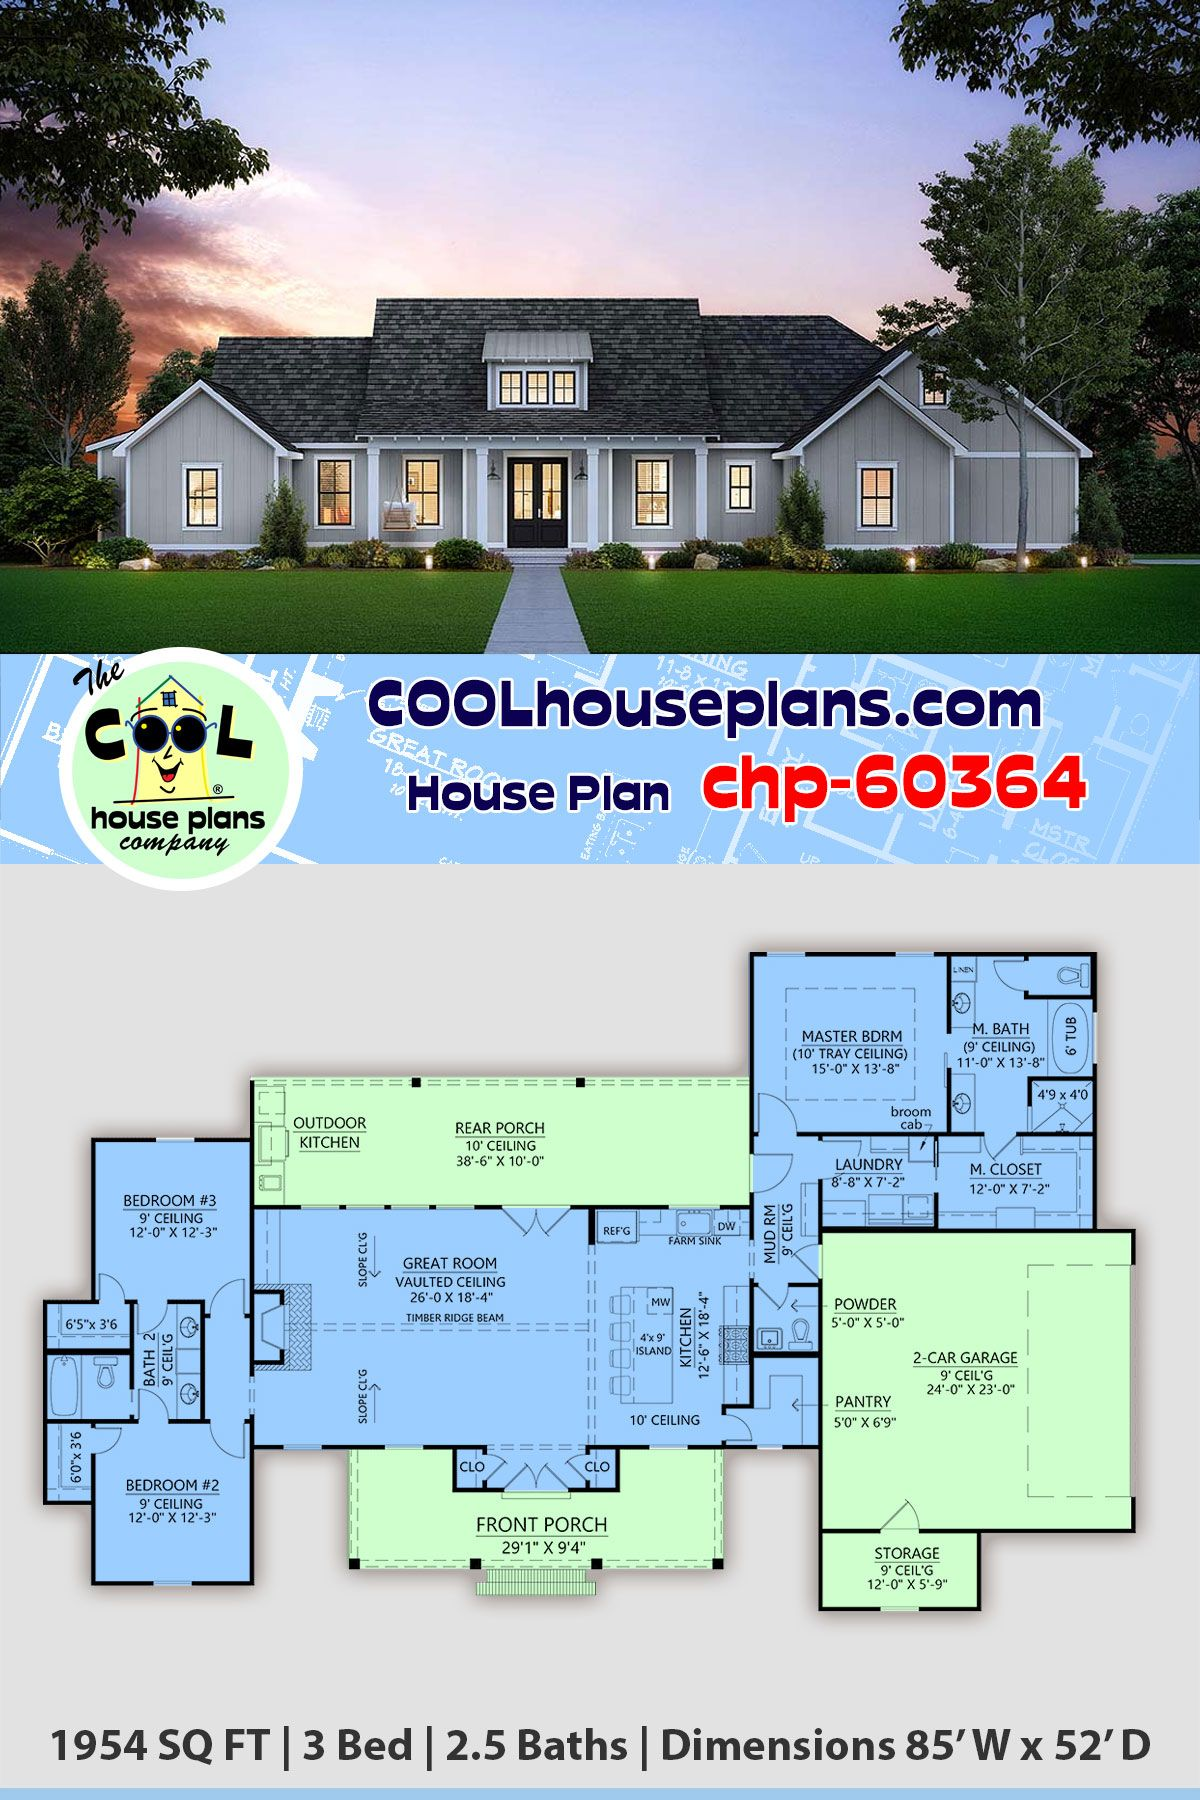 Country Farmhouse Plan chp-60364 is 1954 Sq Ft, 3 Bedrooms, 2.5 Bathrooms and a 2 Bay Garage